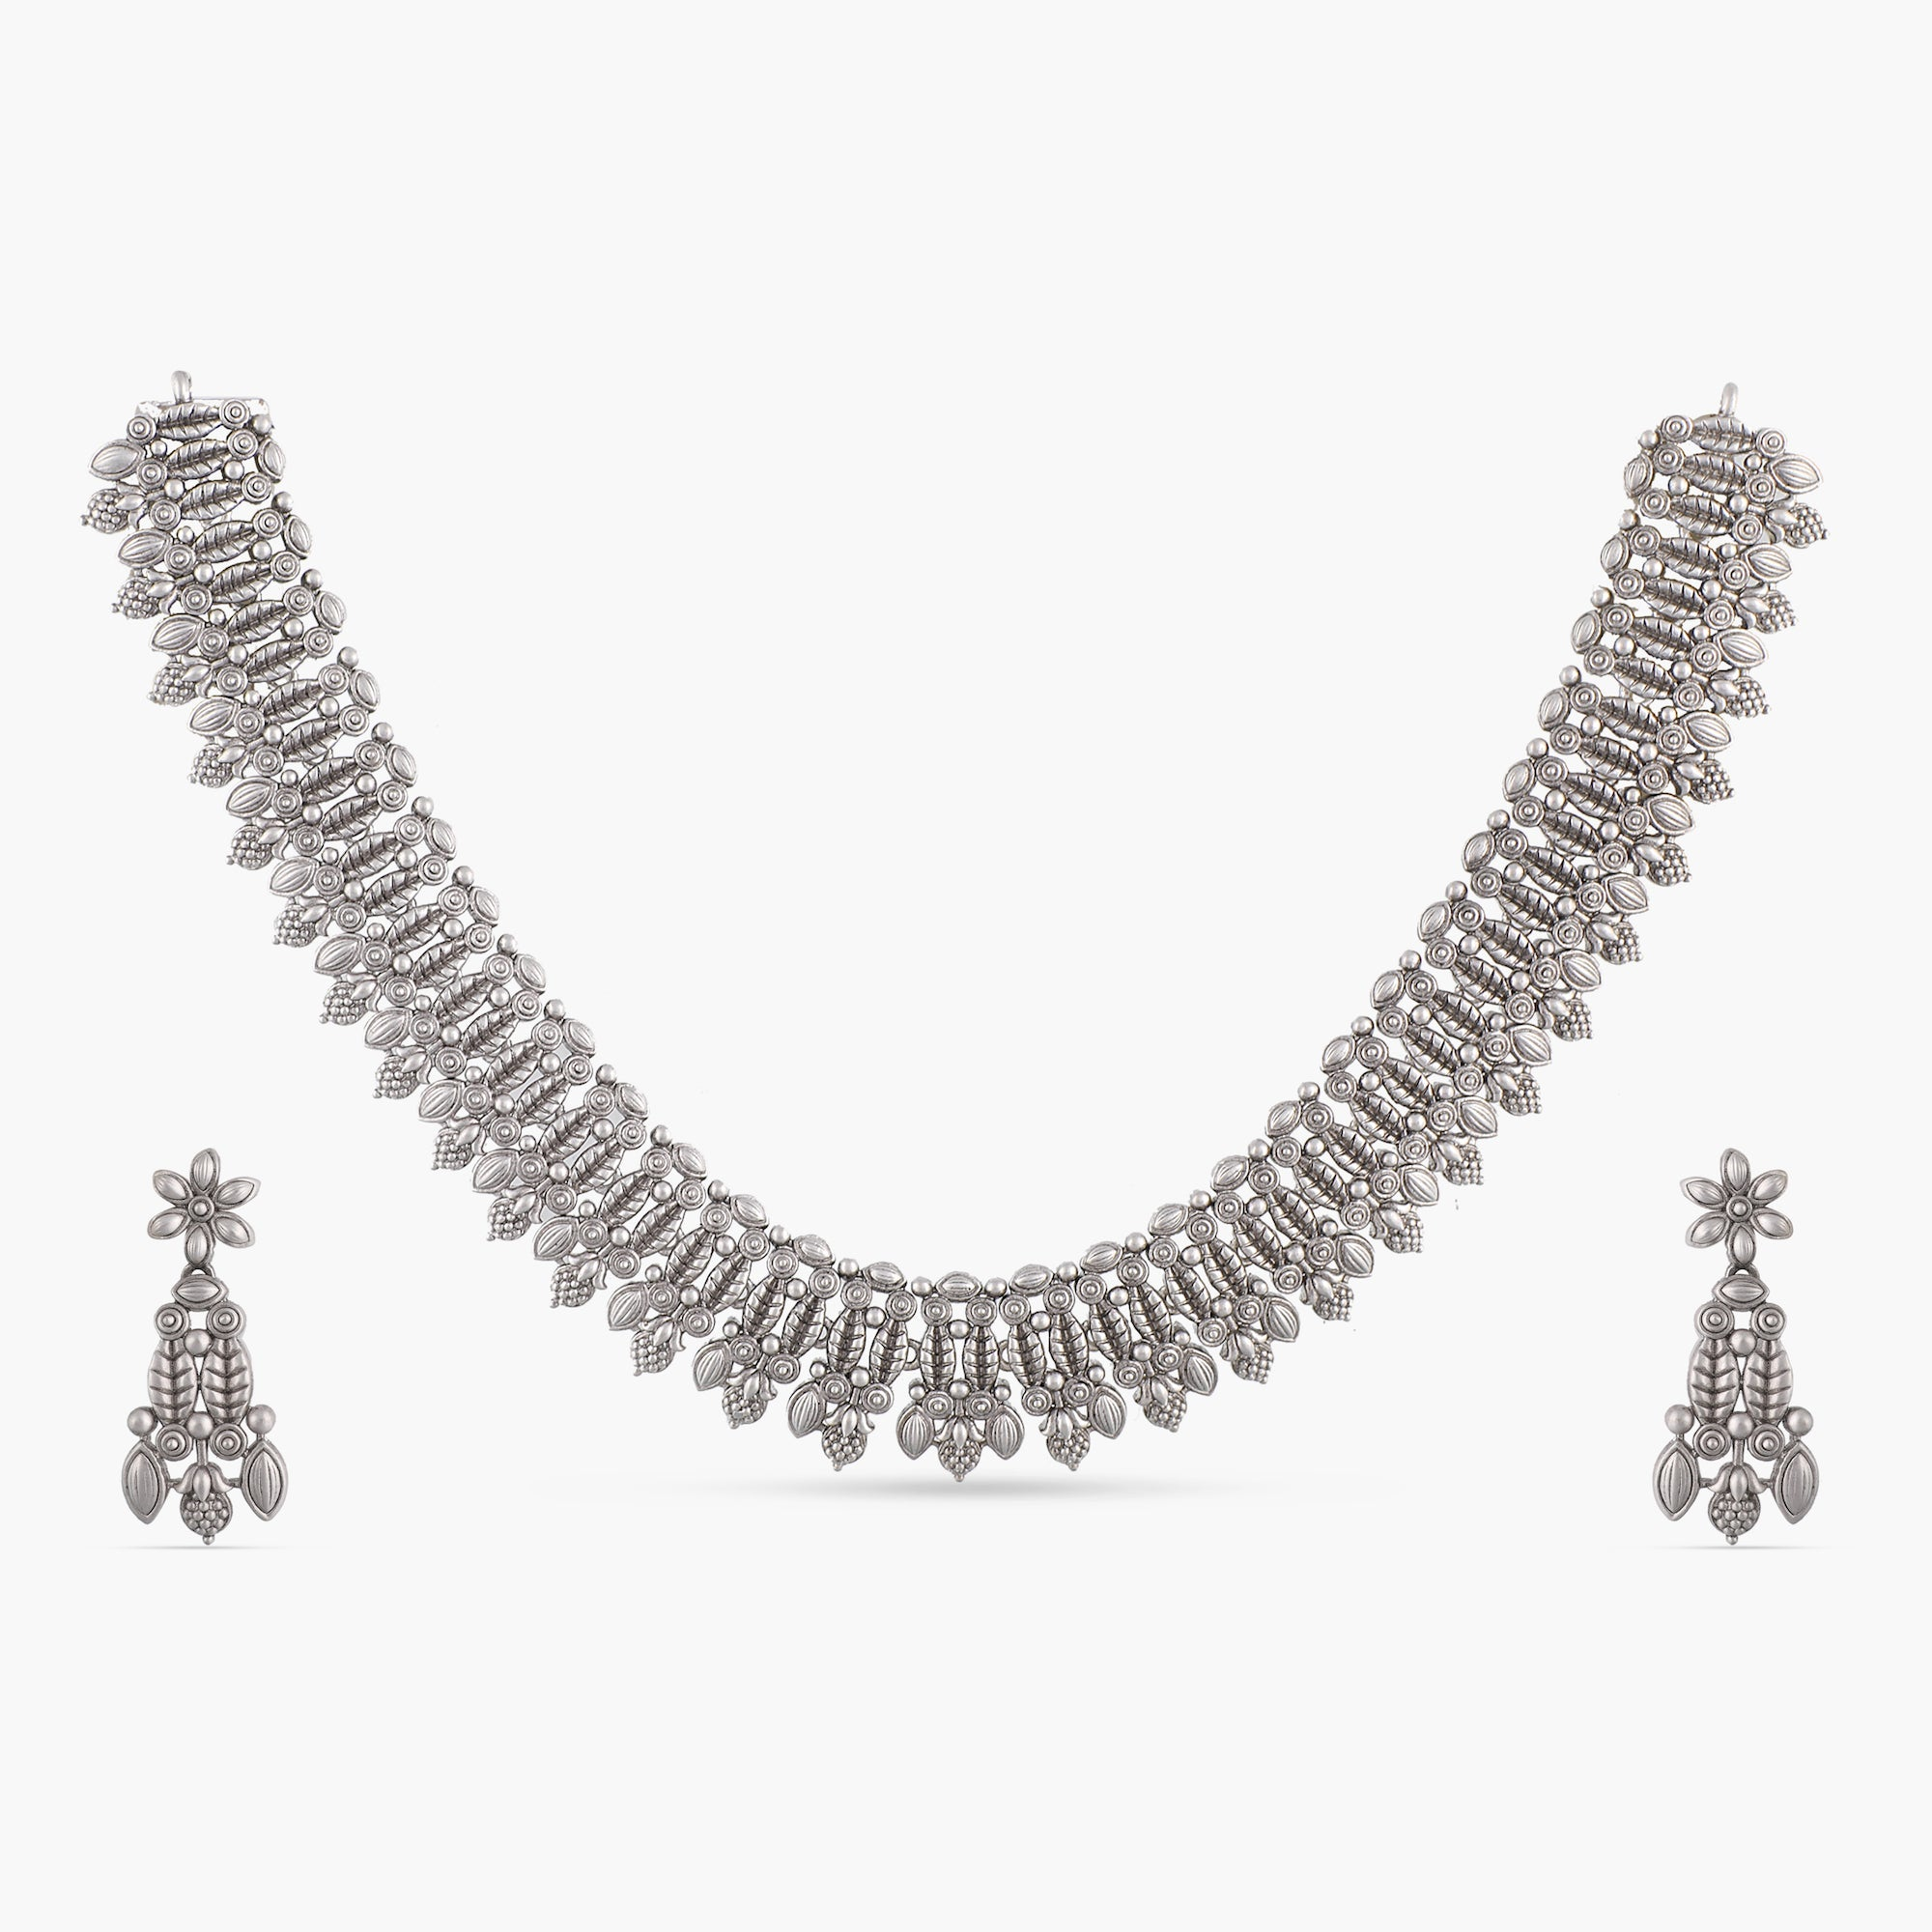 Charu Antique Silver Necklace Set